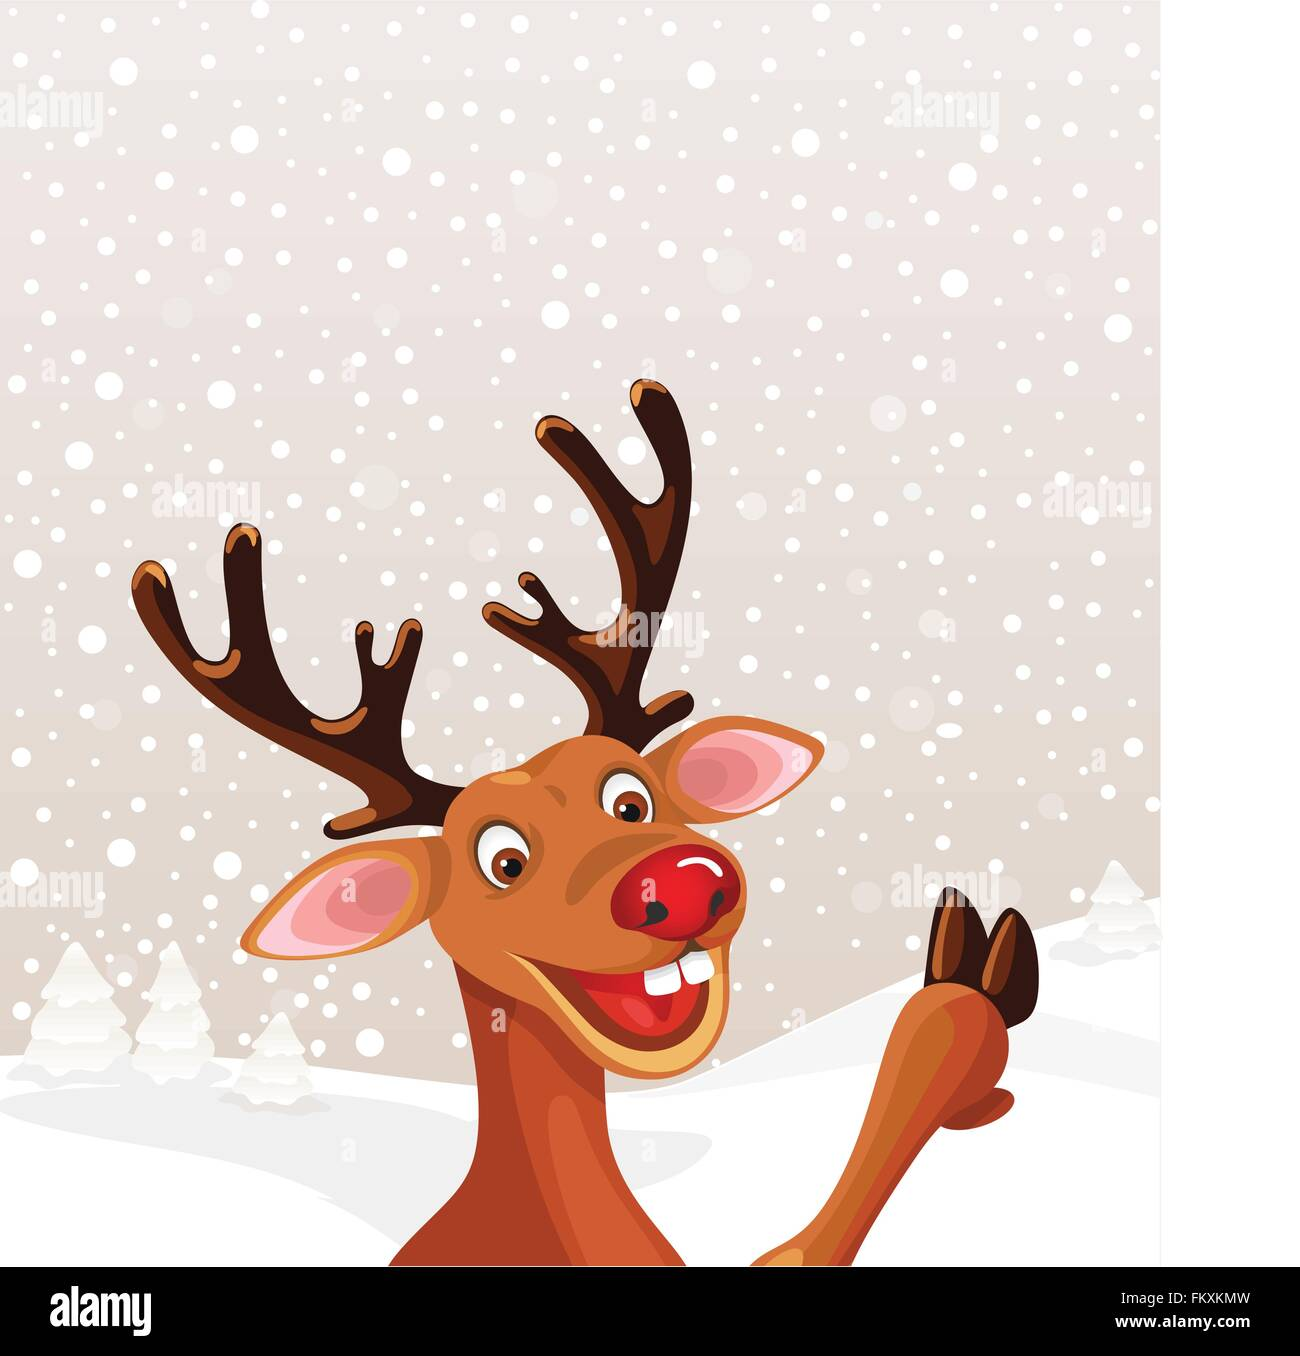 Reindeer with copy space Christmas landscape snowflake pastel background - Stock Image